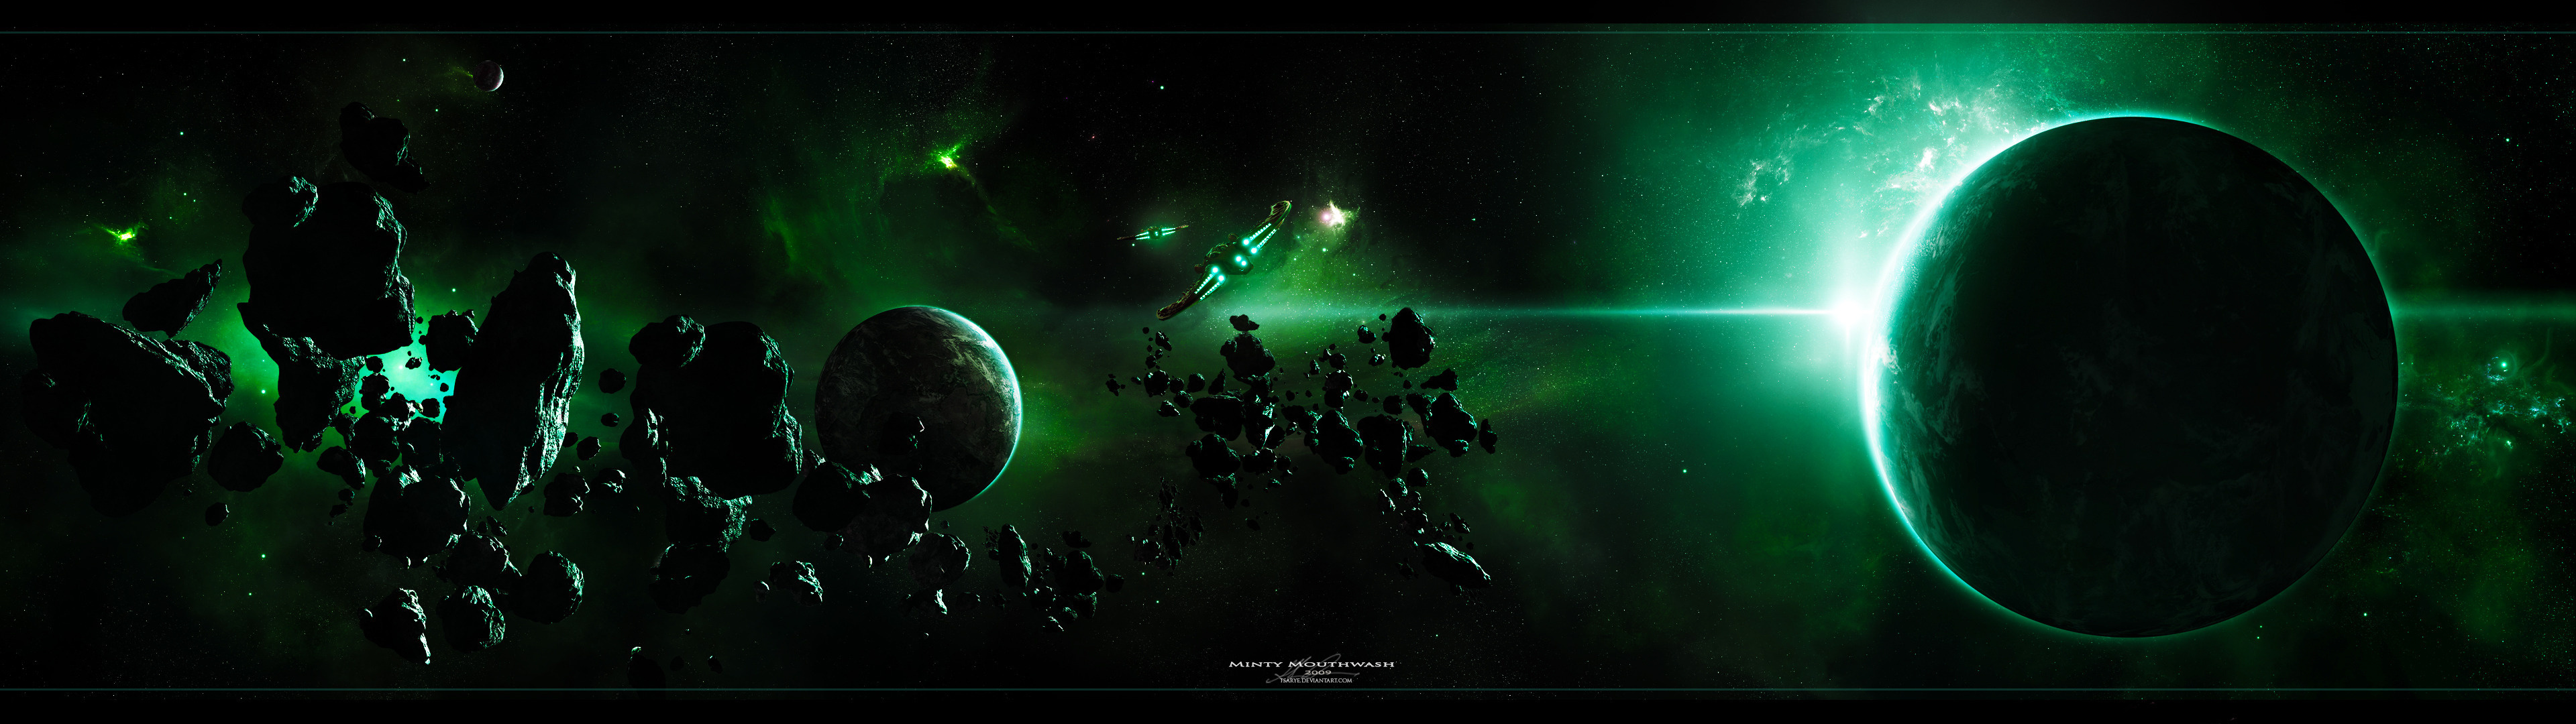 Wallpaper space planet spaceship asteroid desktop wallpaper 3D 3840x1080